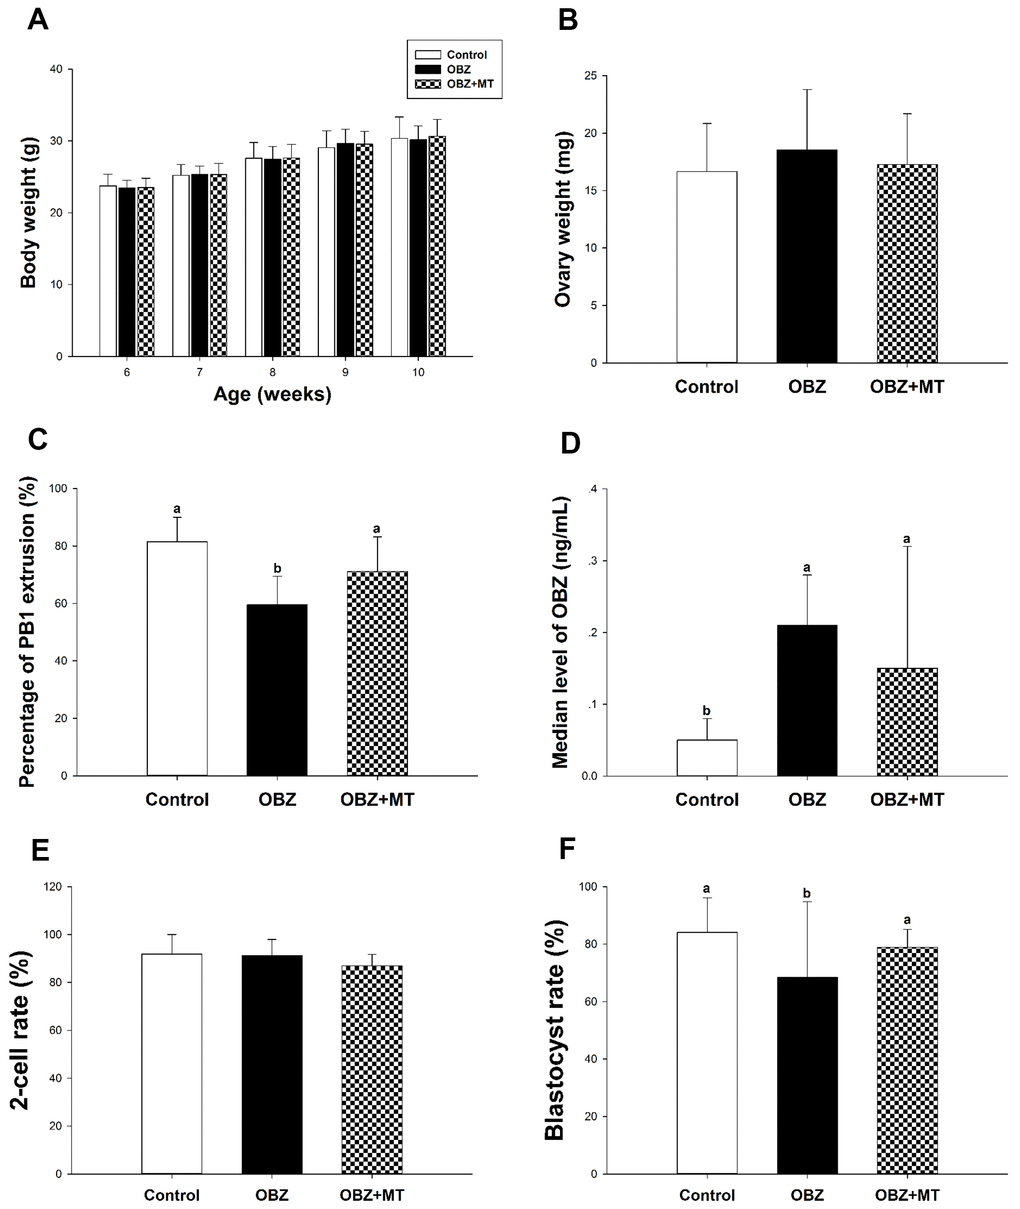 Effects of melatonin on body weight, ovary weight, the rate of PBE, the concentration of OBZ, and embryo development from OBZ-exposed mice in vivo. All parameters were measured throughout the experimental period (6–10 weeks). (A–F) Body weight (A), ovary weight (B), extrusion rate of PB1 (C), concentrations of OBZ (D), and embryo development rate (E, F) from the 2-cell stage to blastocyst stage in each treatment group. Values indicated by different letters are significantly different (P